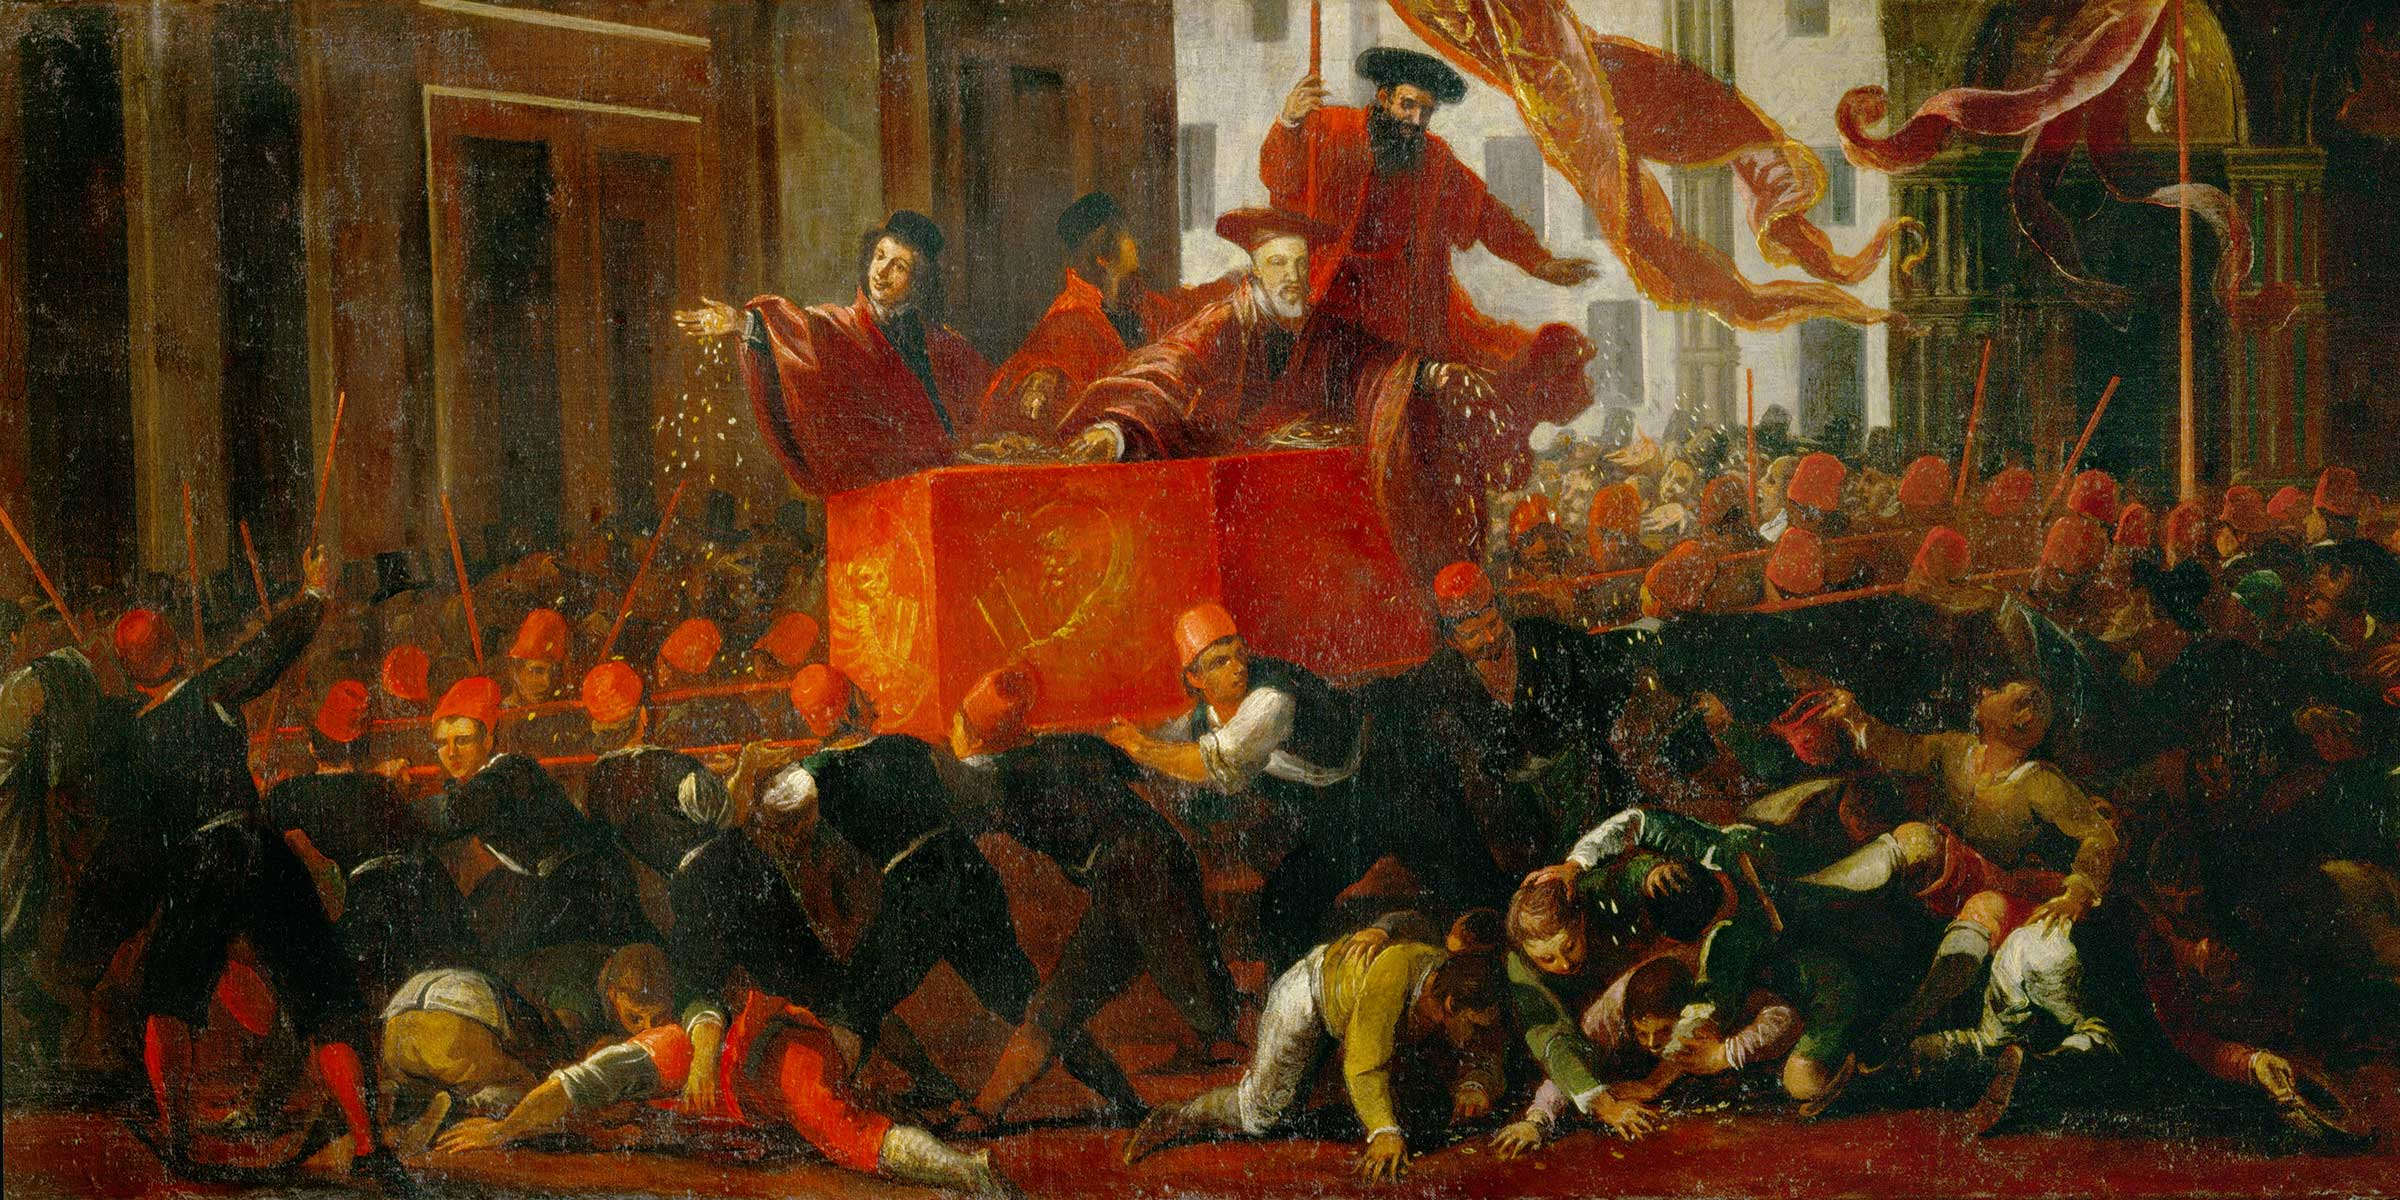 The Doge Throws Coins Among the Crowd (detail), Venice, sixteenth century.